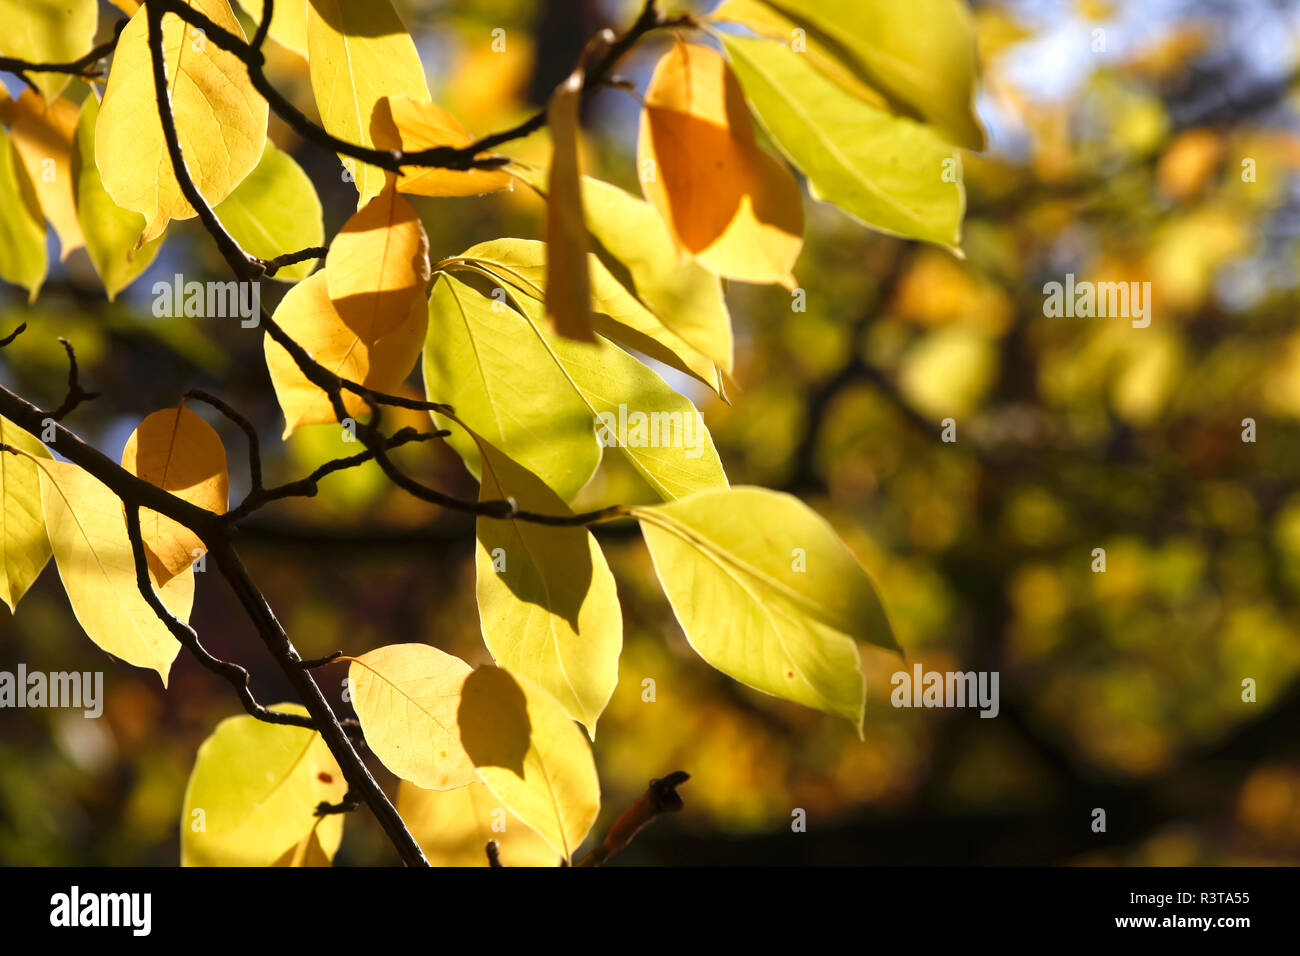 Saucer Magnolia Leaves In Autumn Stock Photo Alamy